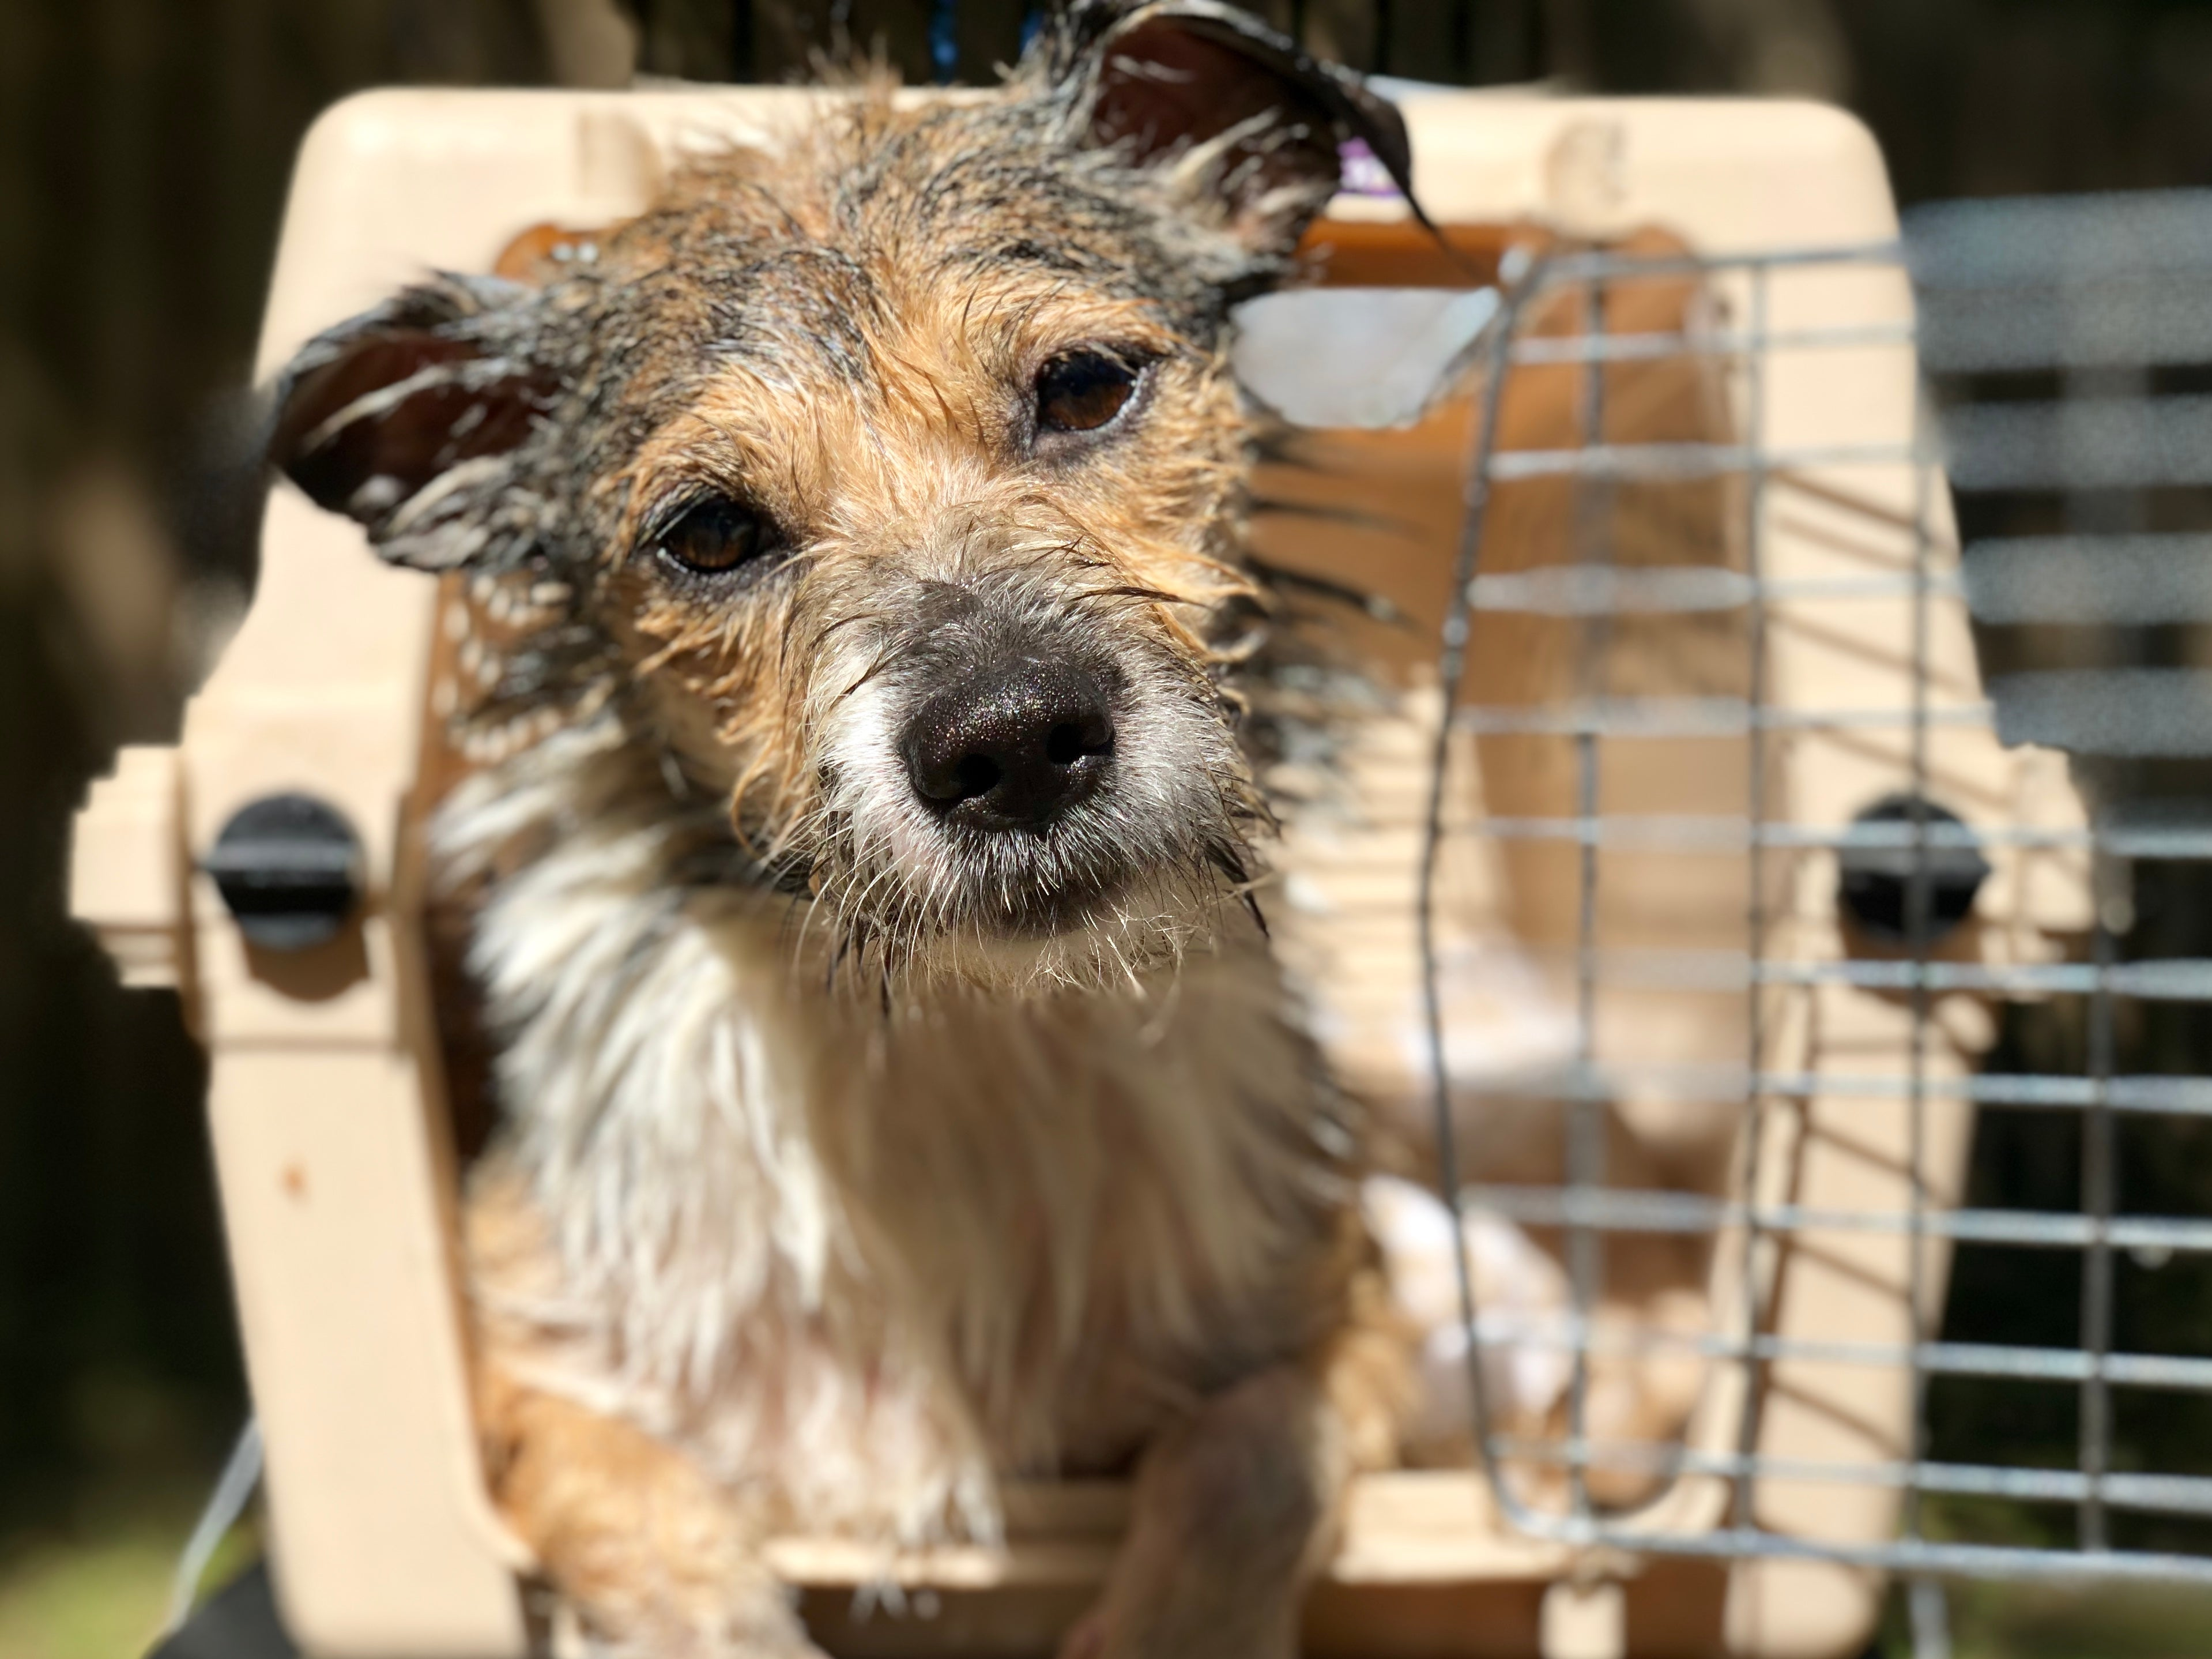 Hurricane Dorian: Help People and Pets Now